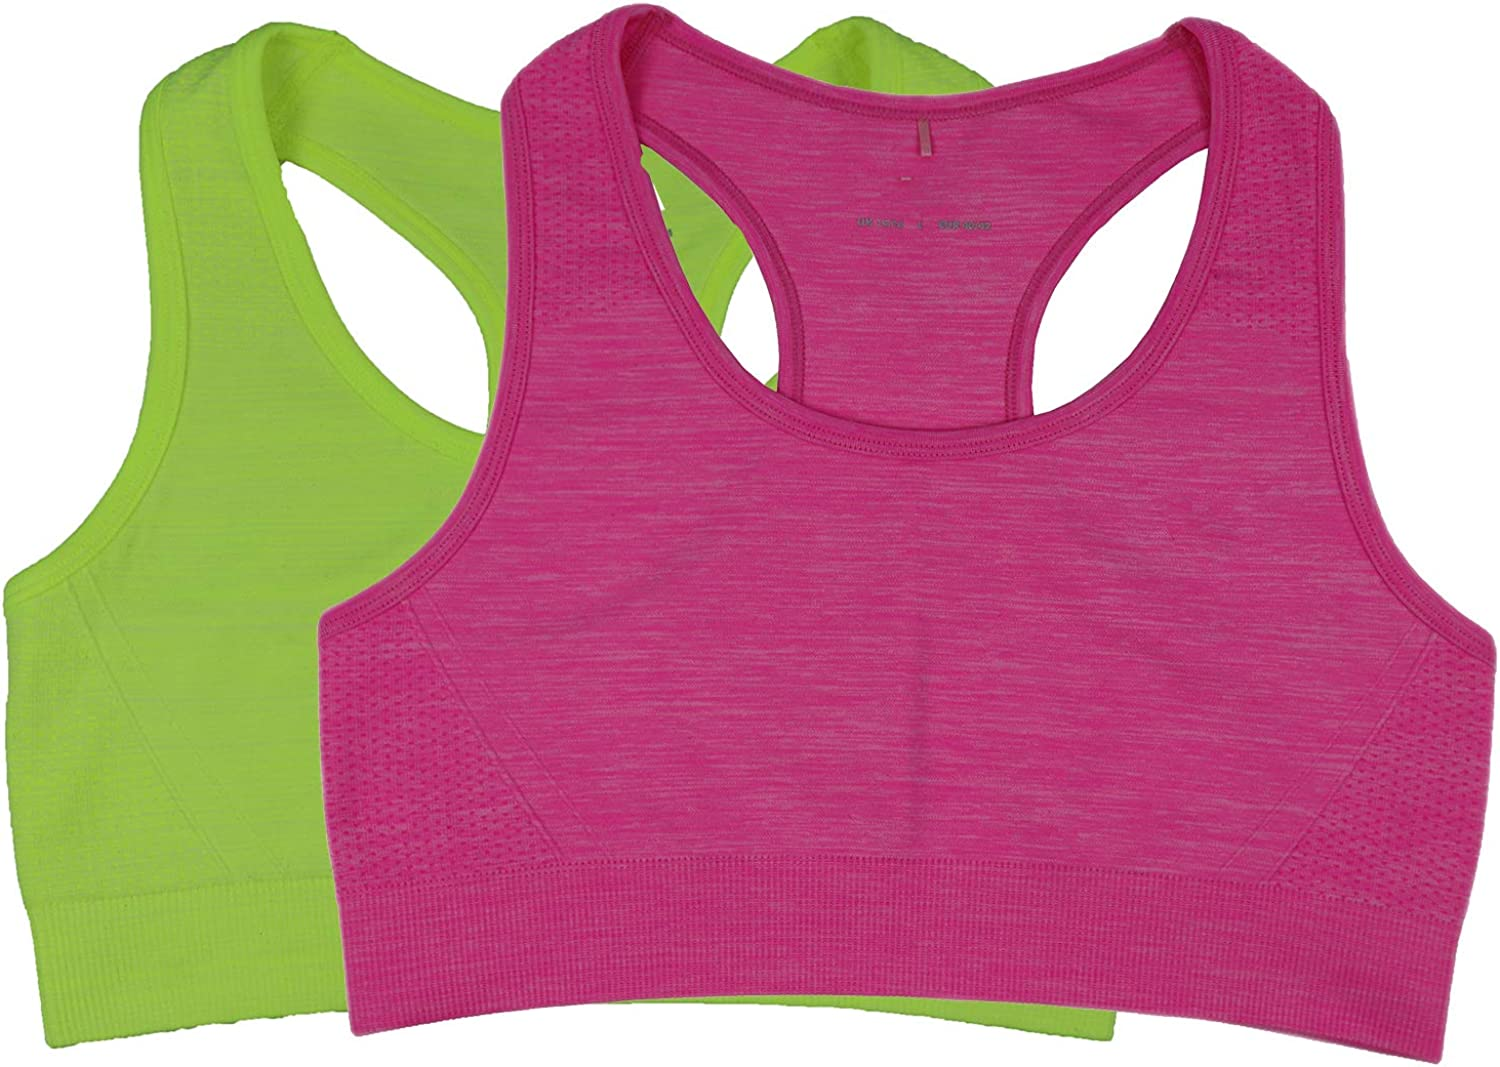 Womens Double-Layer Custom-Control Sport Bra Seamless Plus Size Comfy Running Brassiere